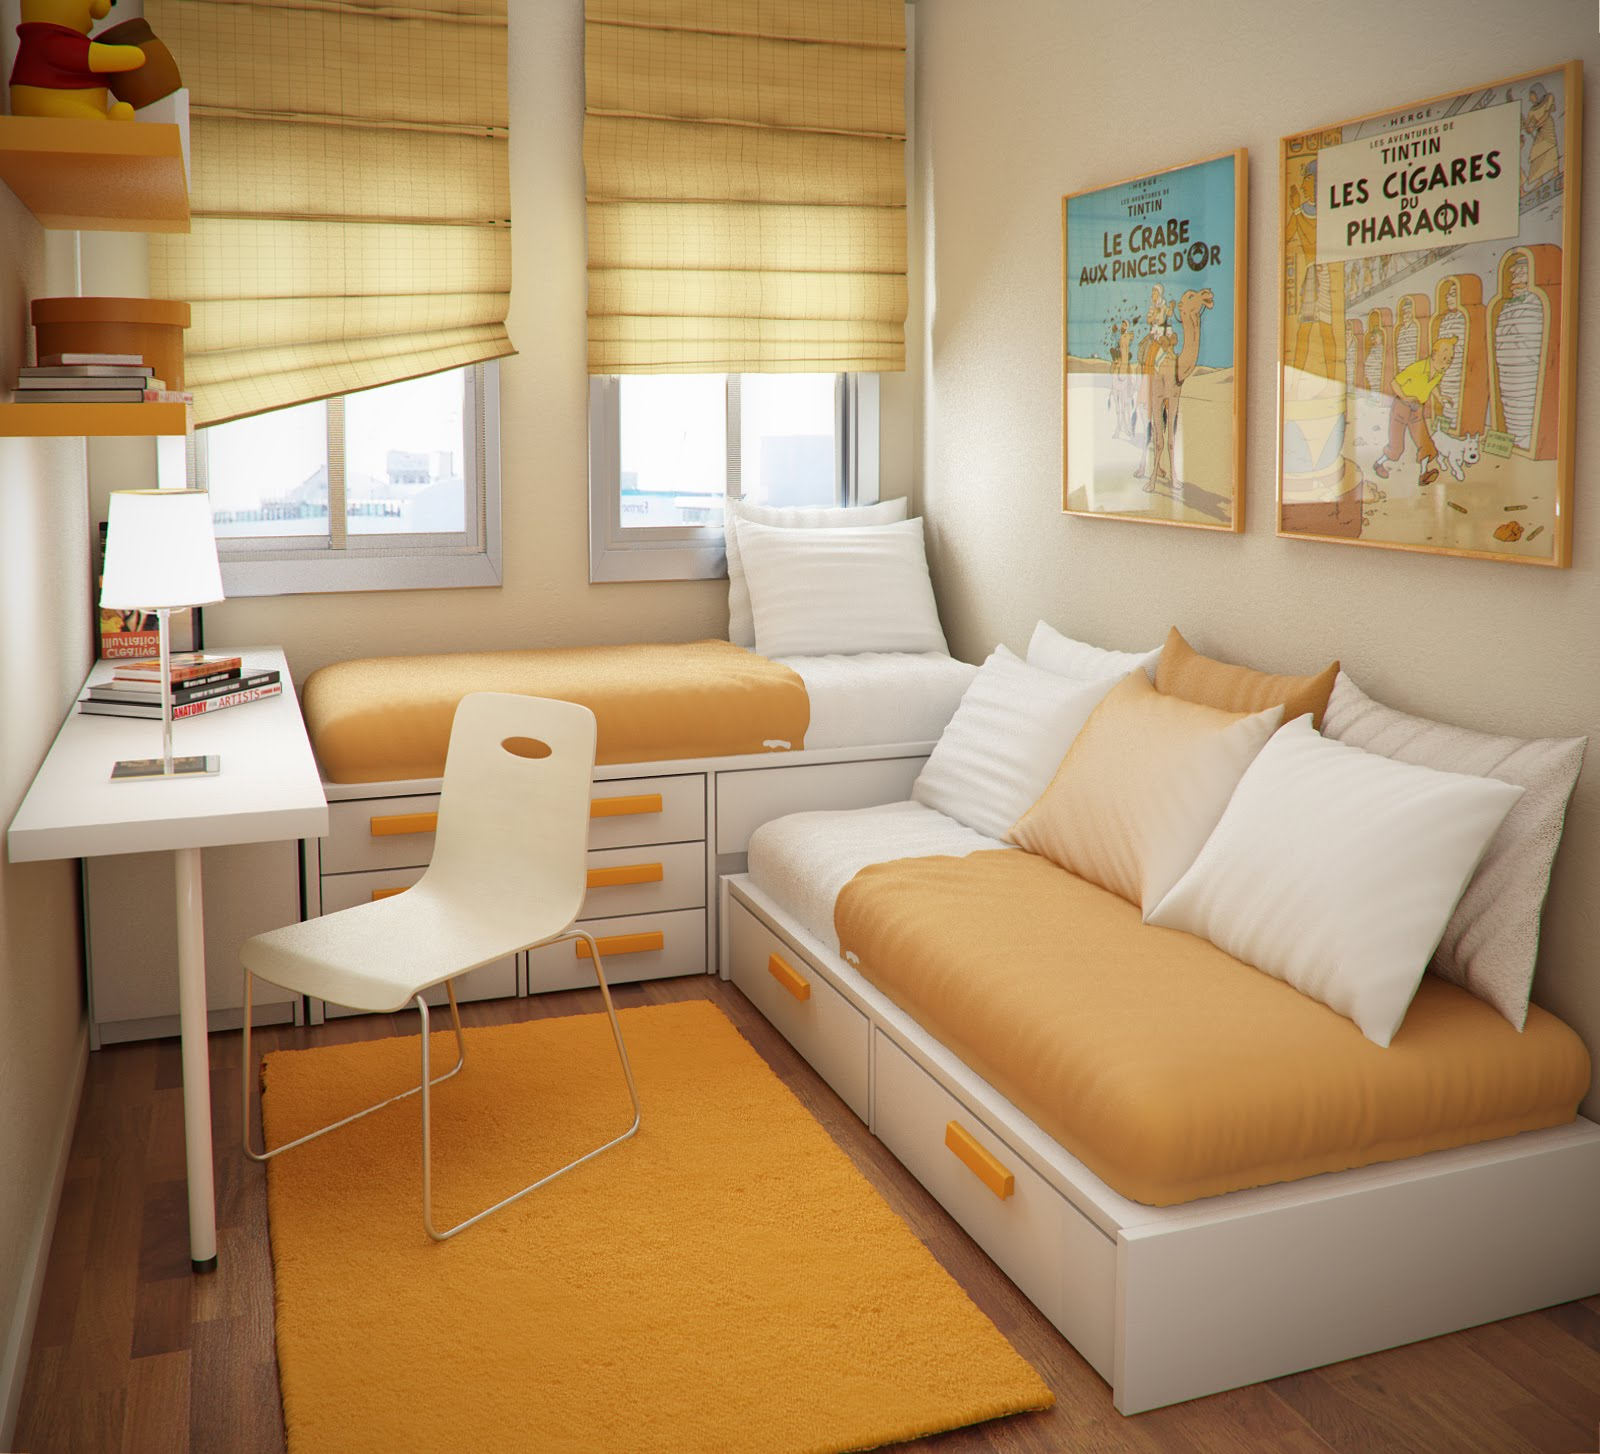 Use Simple Storage Bunk Beds in Small Bedroom Ideas with White Shaded Table Lamp